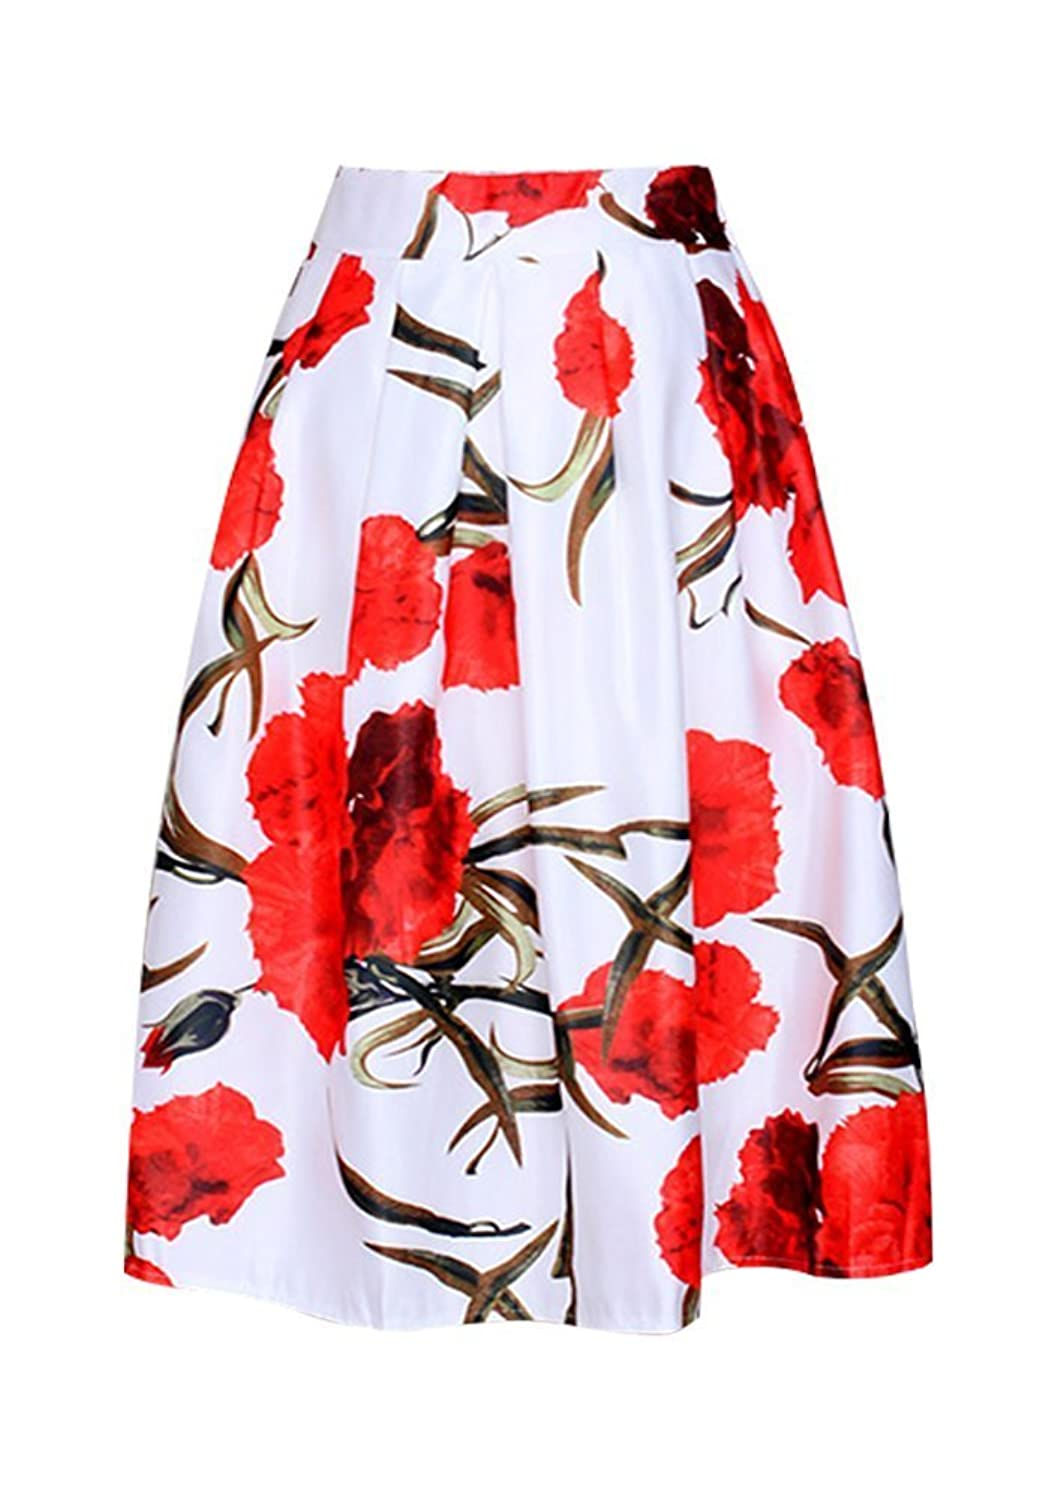 KOJHu Women's Vintage Pleated Floral Print Flared Casual Swing Skirts Red L